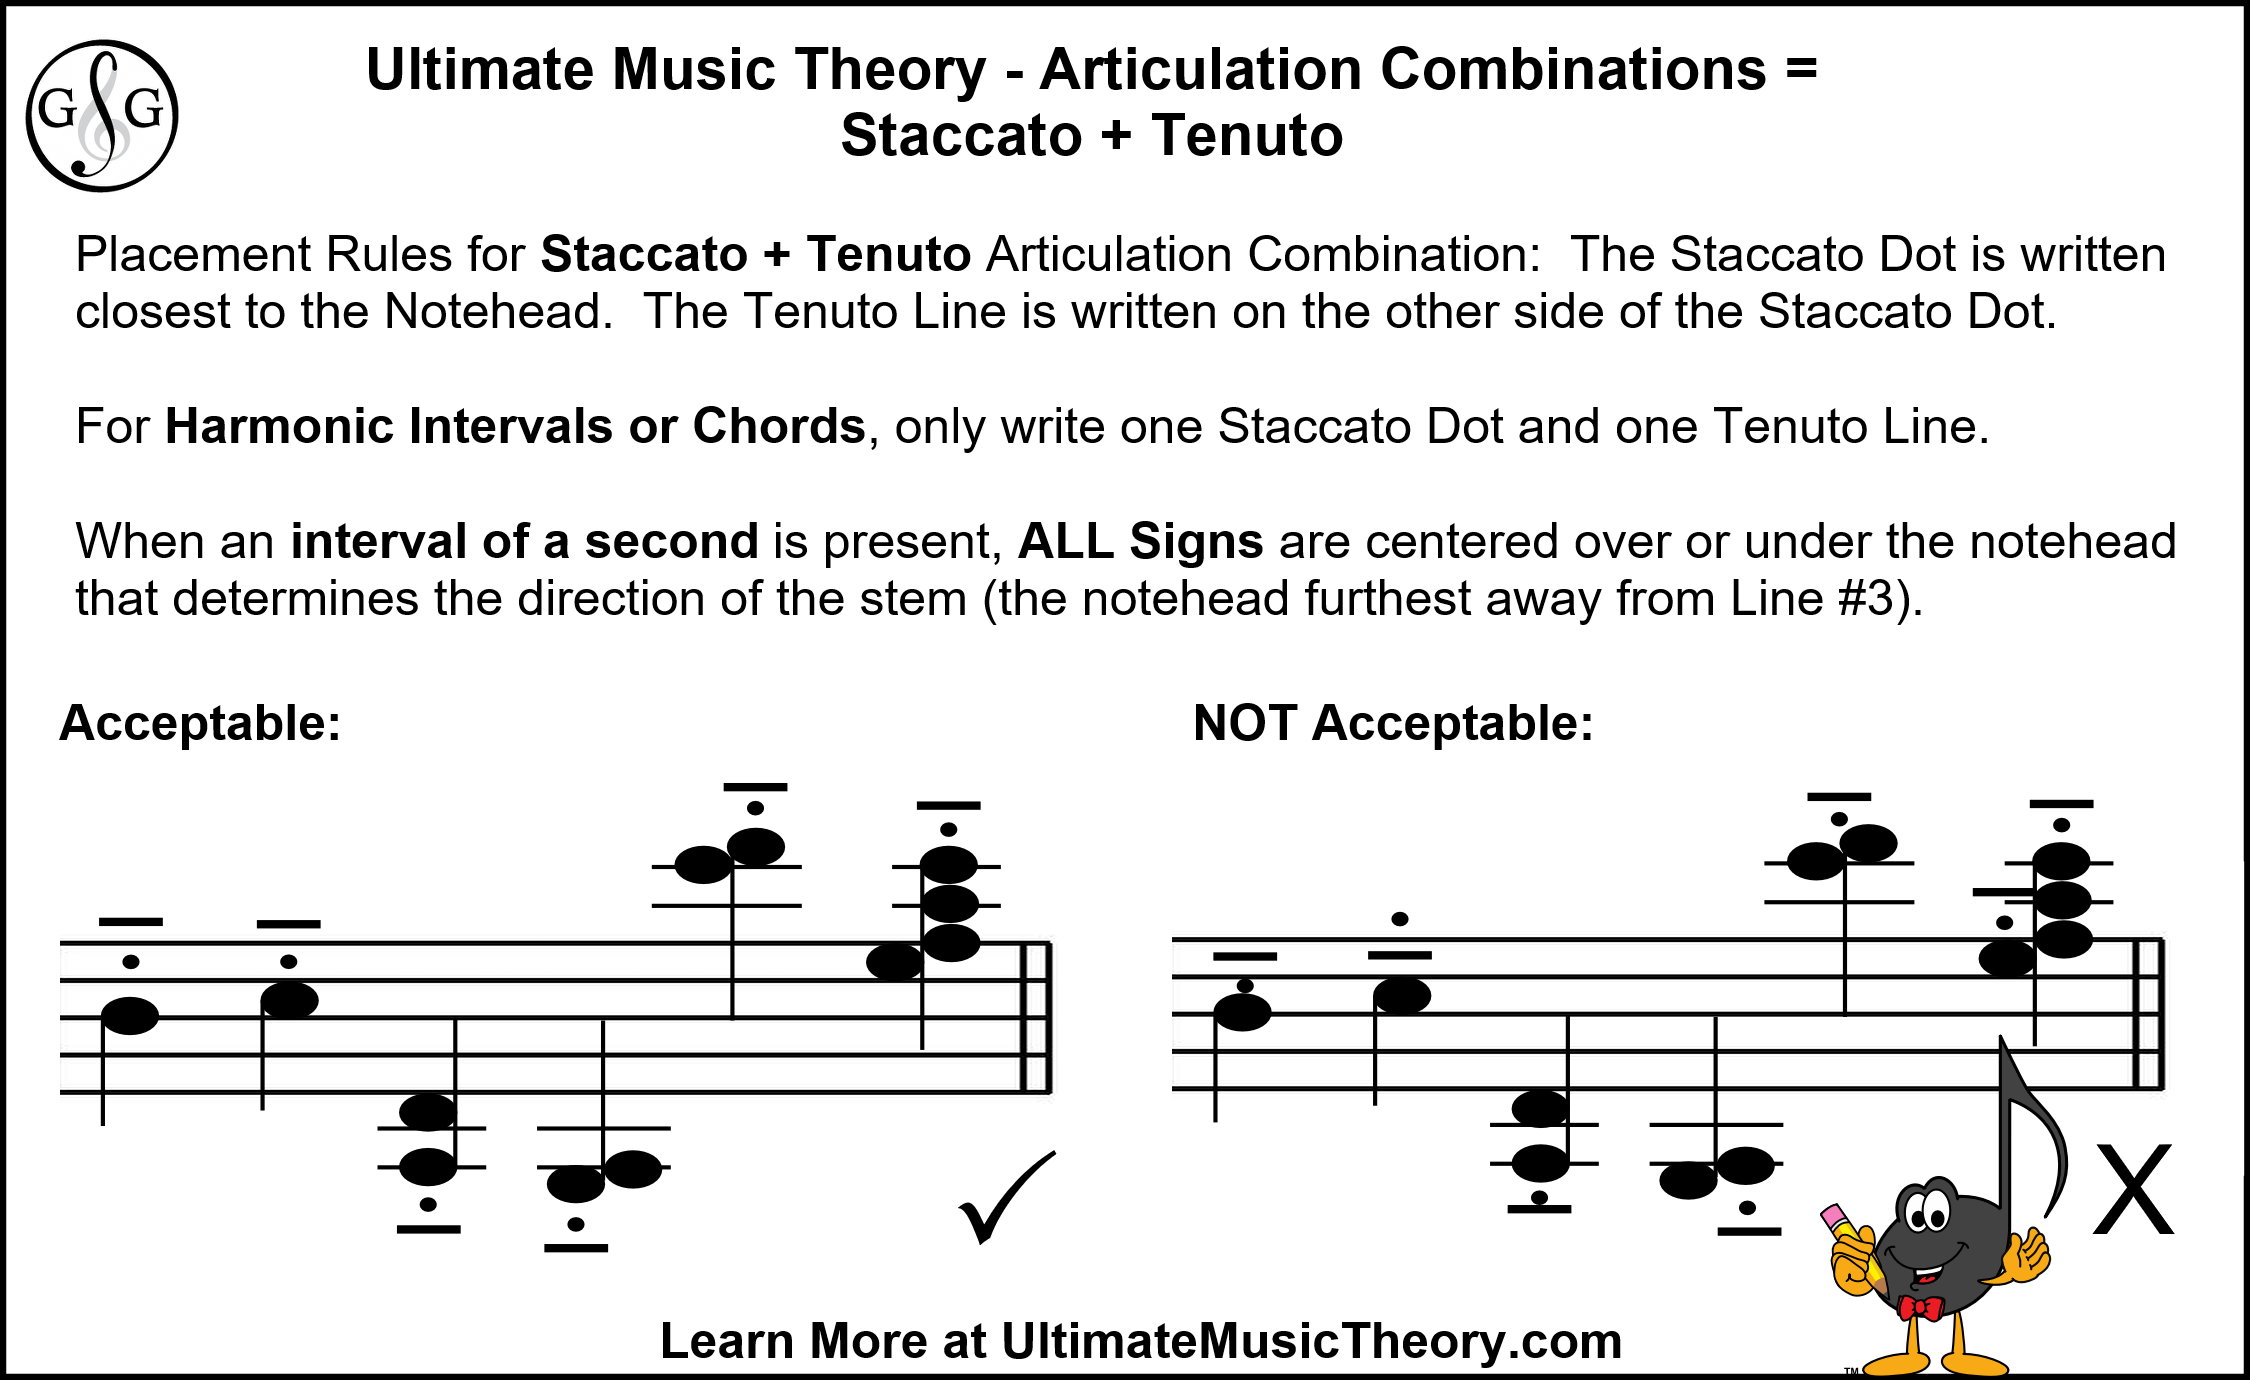 UMT Articulation Combinations Staccato and Tenuto